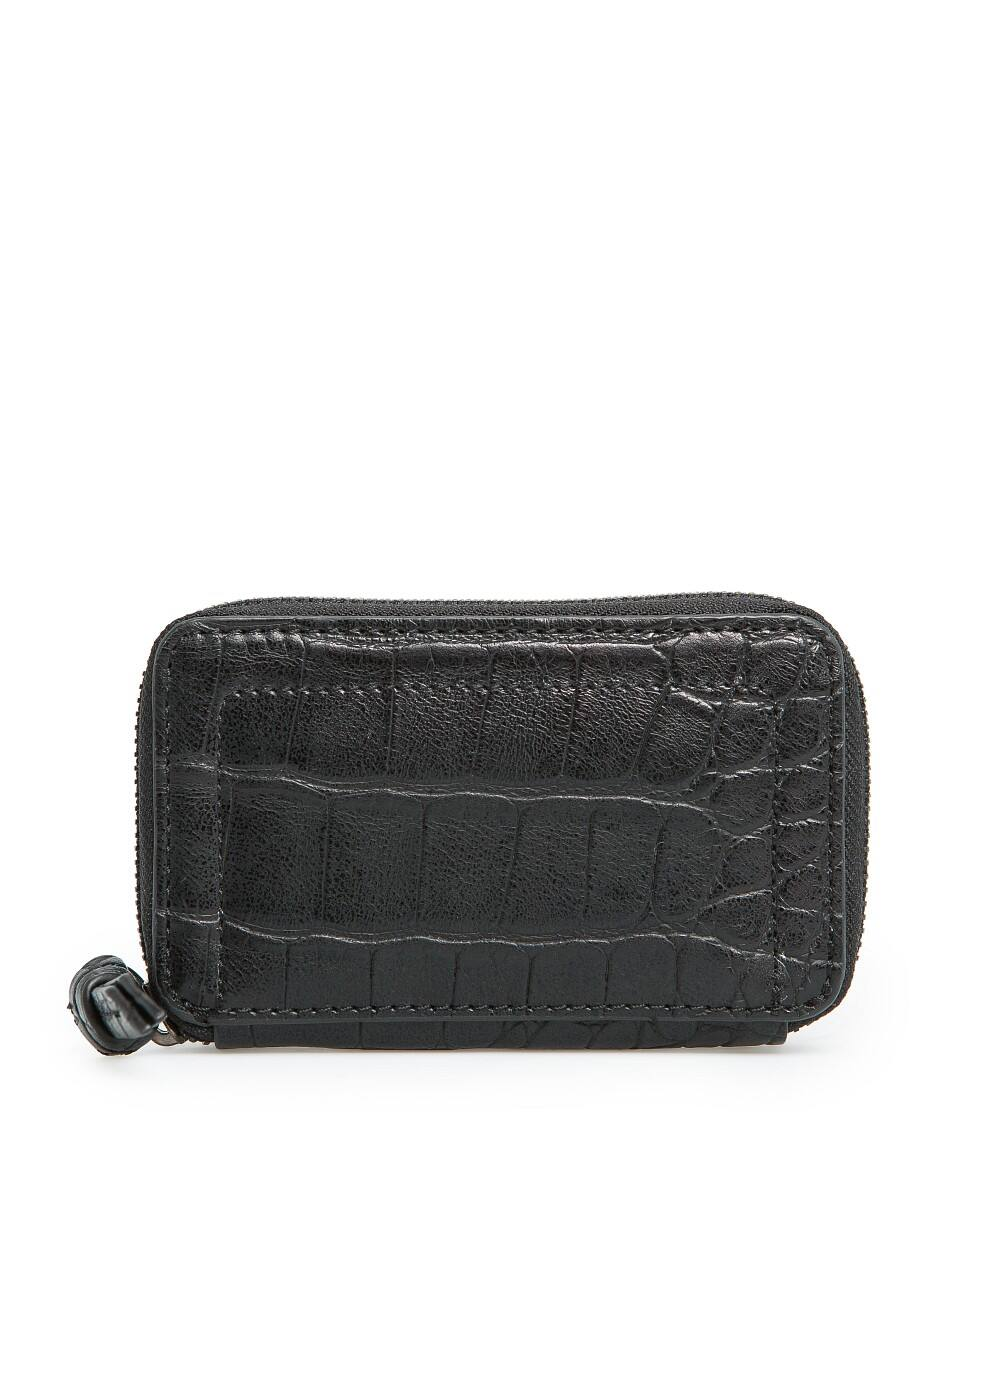 CROC EFFECT COIN PURSE